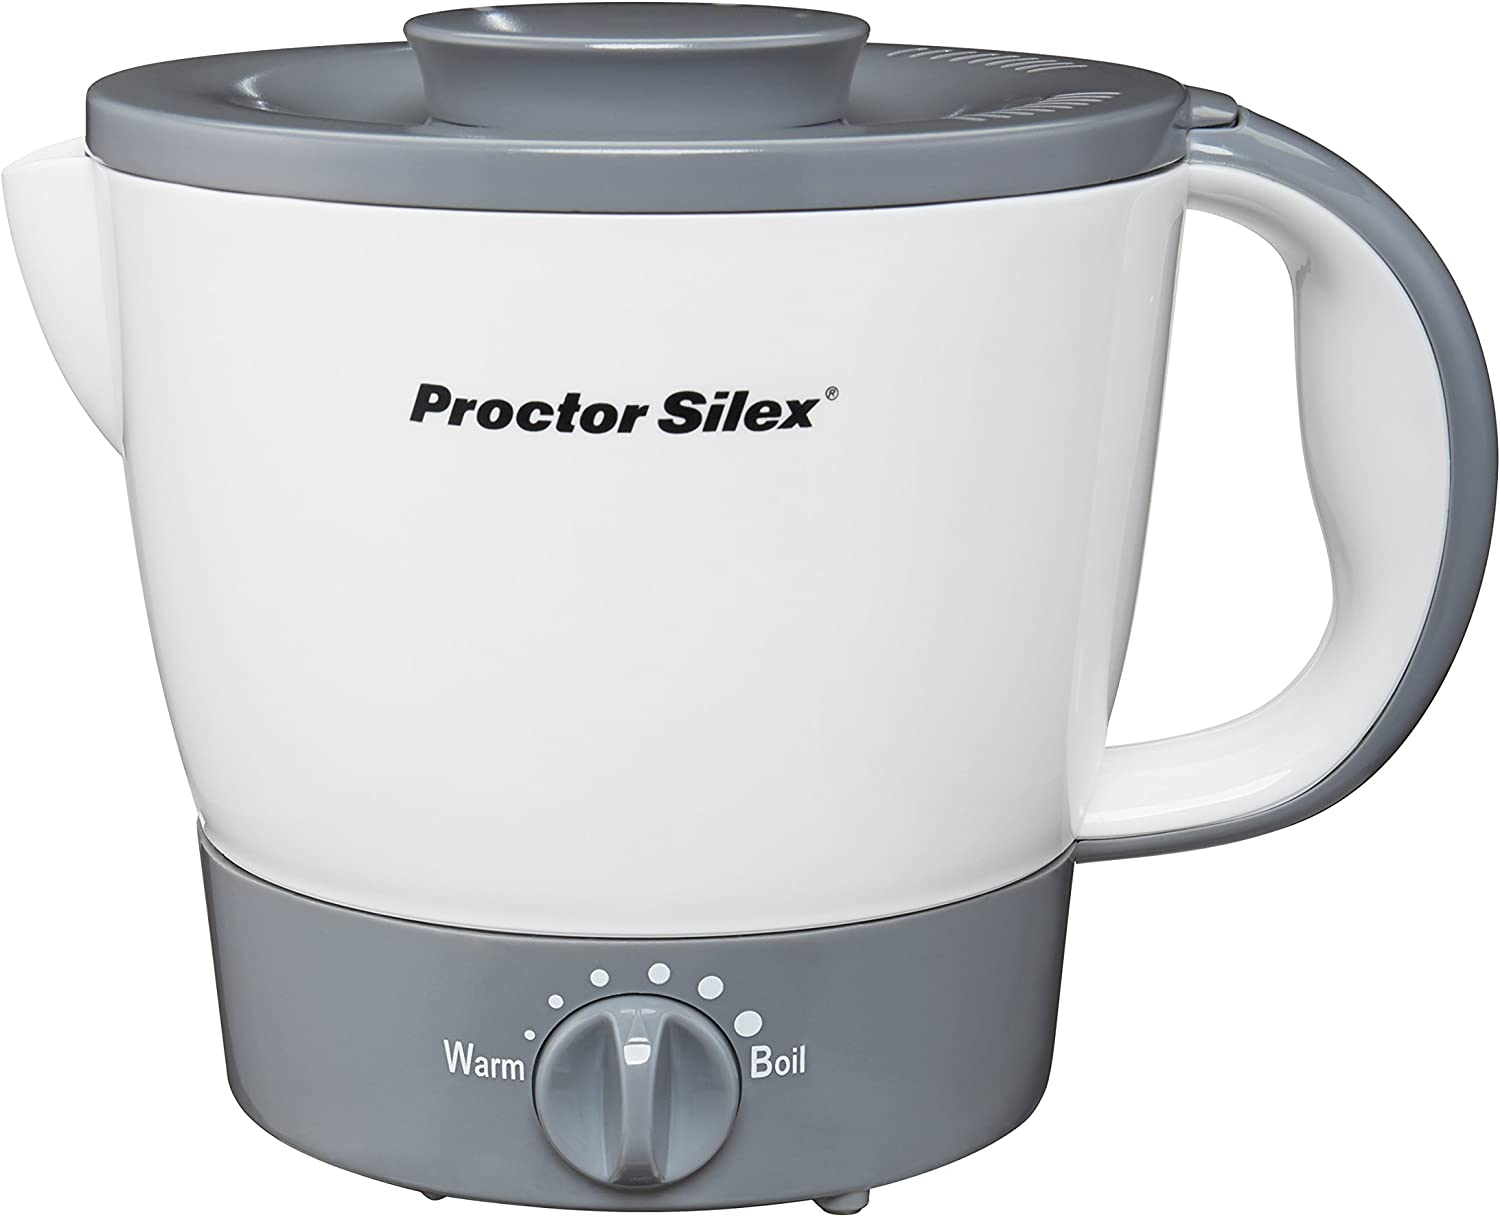 Proctor Silex 32oz Adjustable Temperature Electric Hot Pot for Tea, Boiling Water, Cooking Noodles and Soup, White (48507)